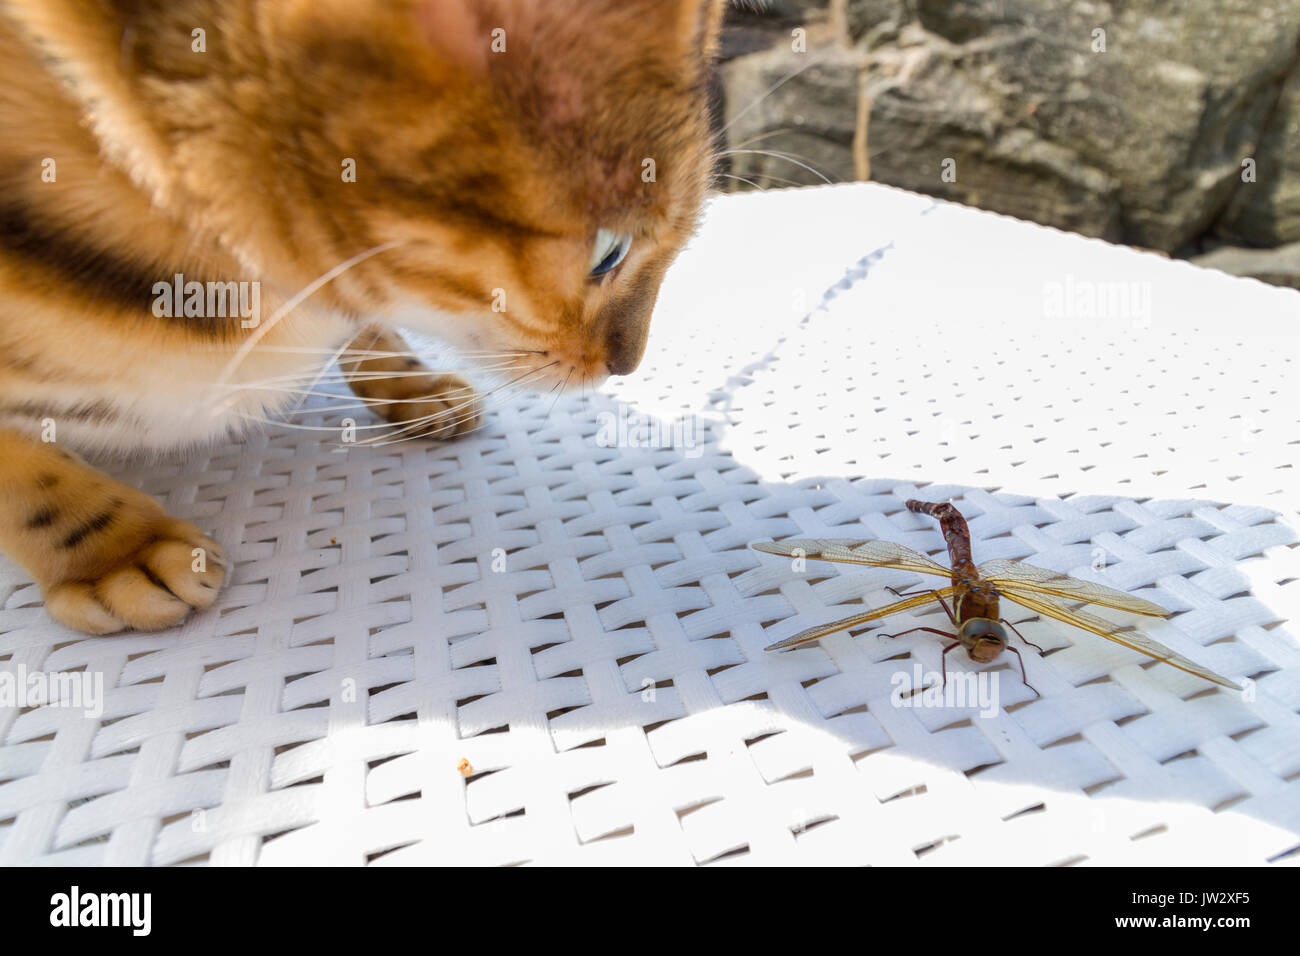 Female Bengal cat capturing, toying with and eventually killing a large dragon fly insect outdoors  Model Release: No.  Property Release: Yes. - Stock Image